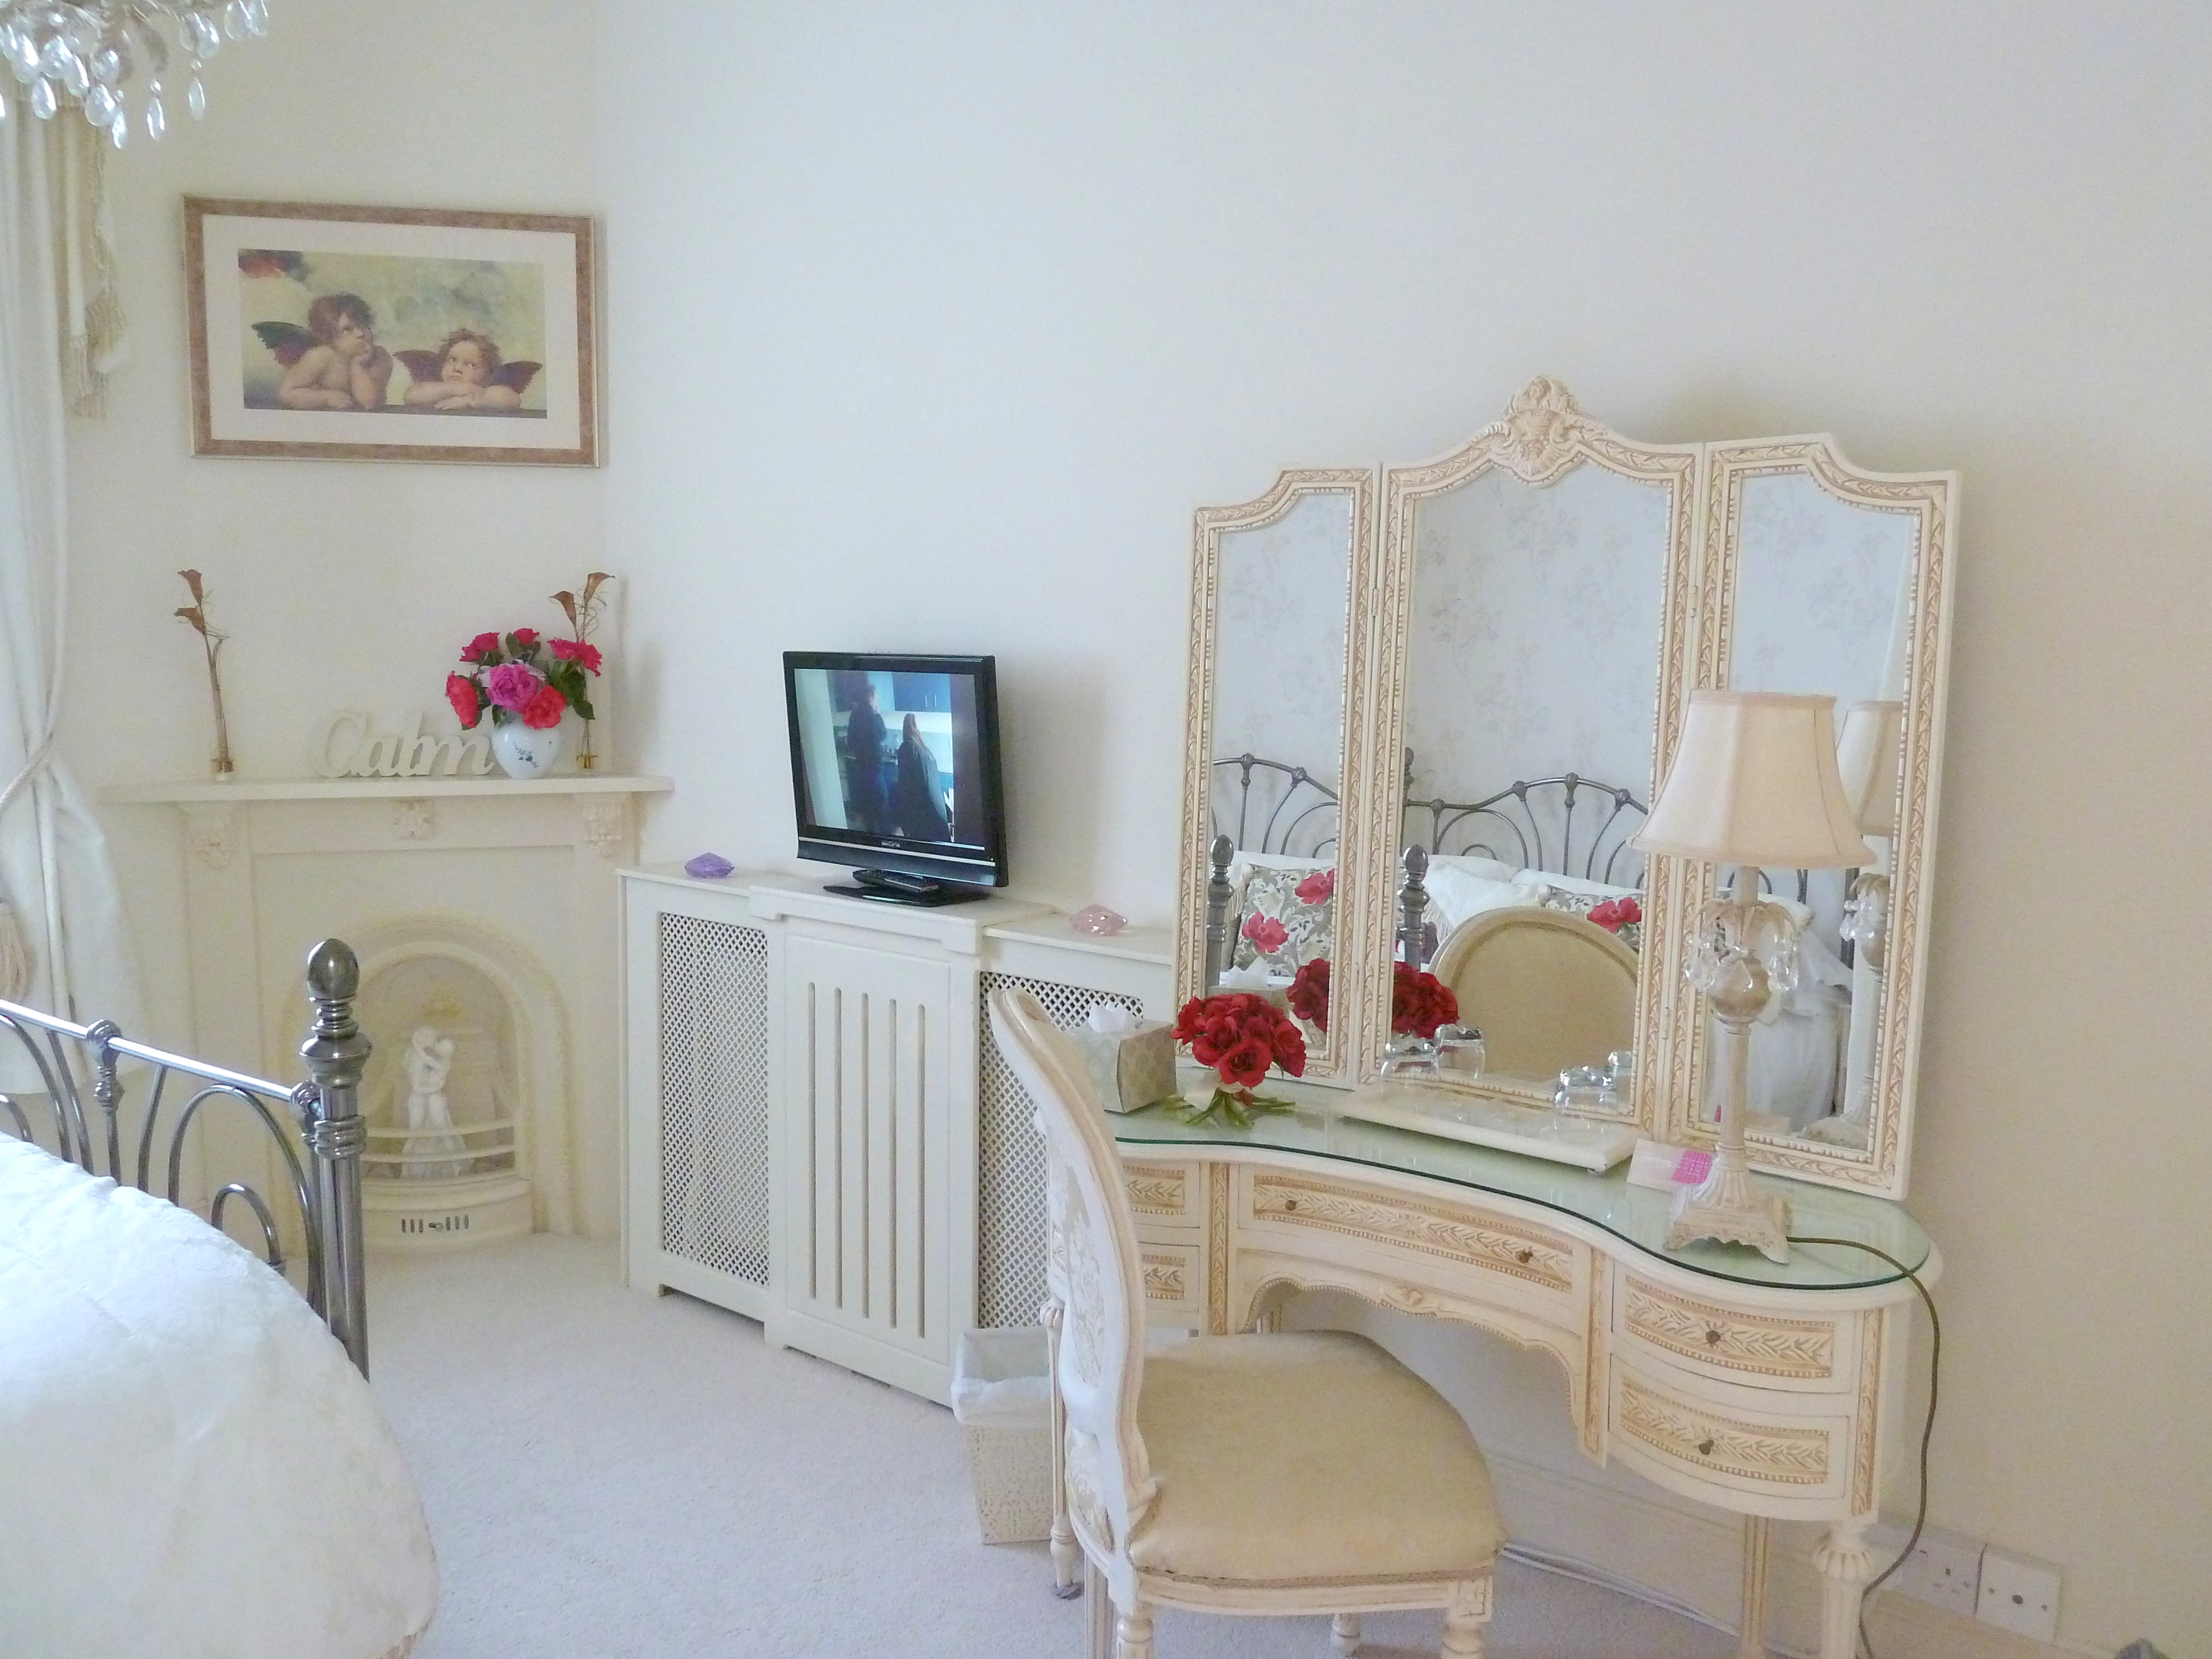 The bedroom at The Hesketh Crescent Holiday Apartment in Torquay.